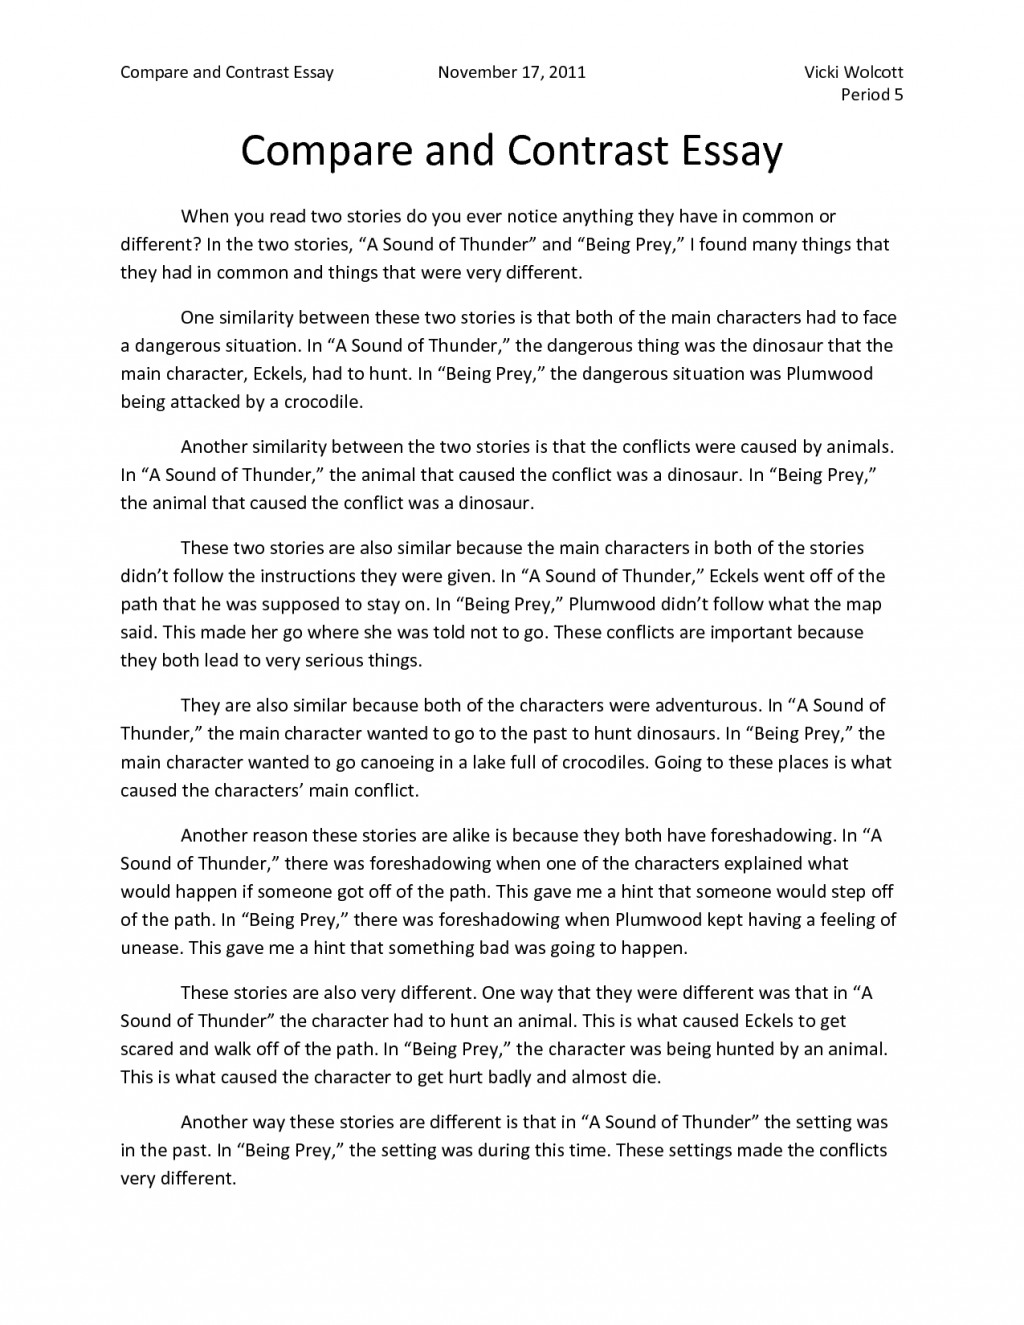 003 Perfect Essays Compare And Contrast Essay Introduction Example How To Write College Striking Examples Level Topics 9th Grade For Students Large